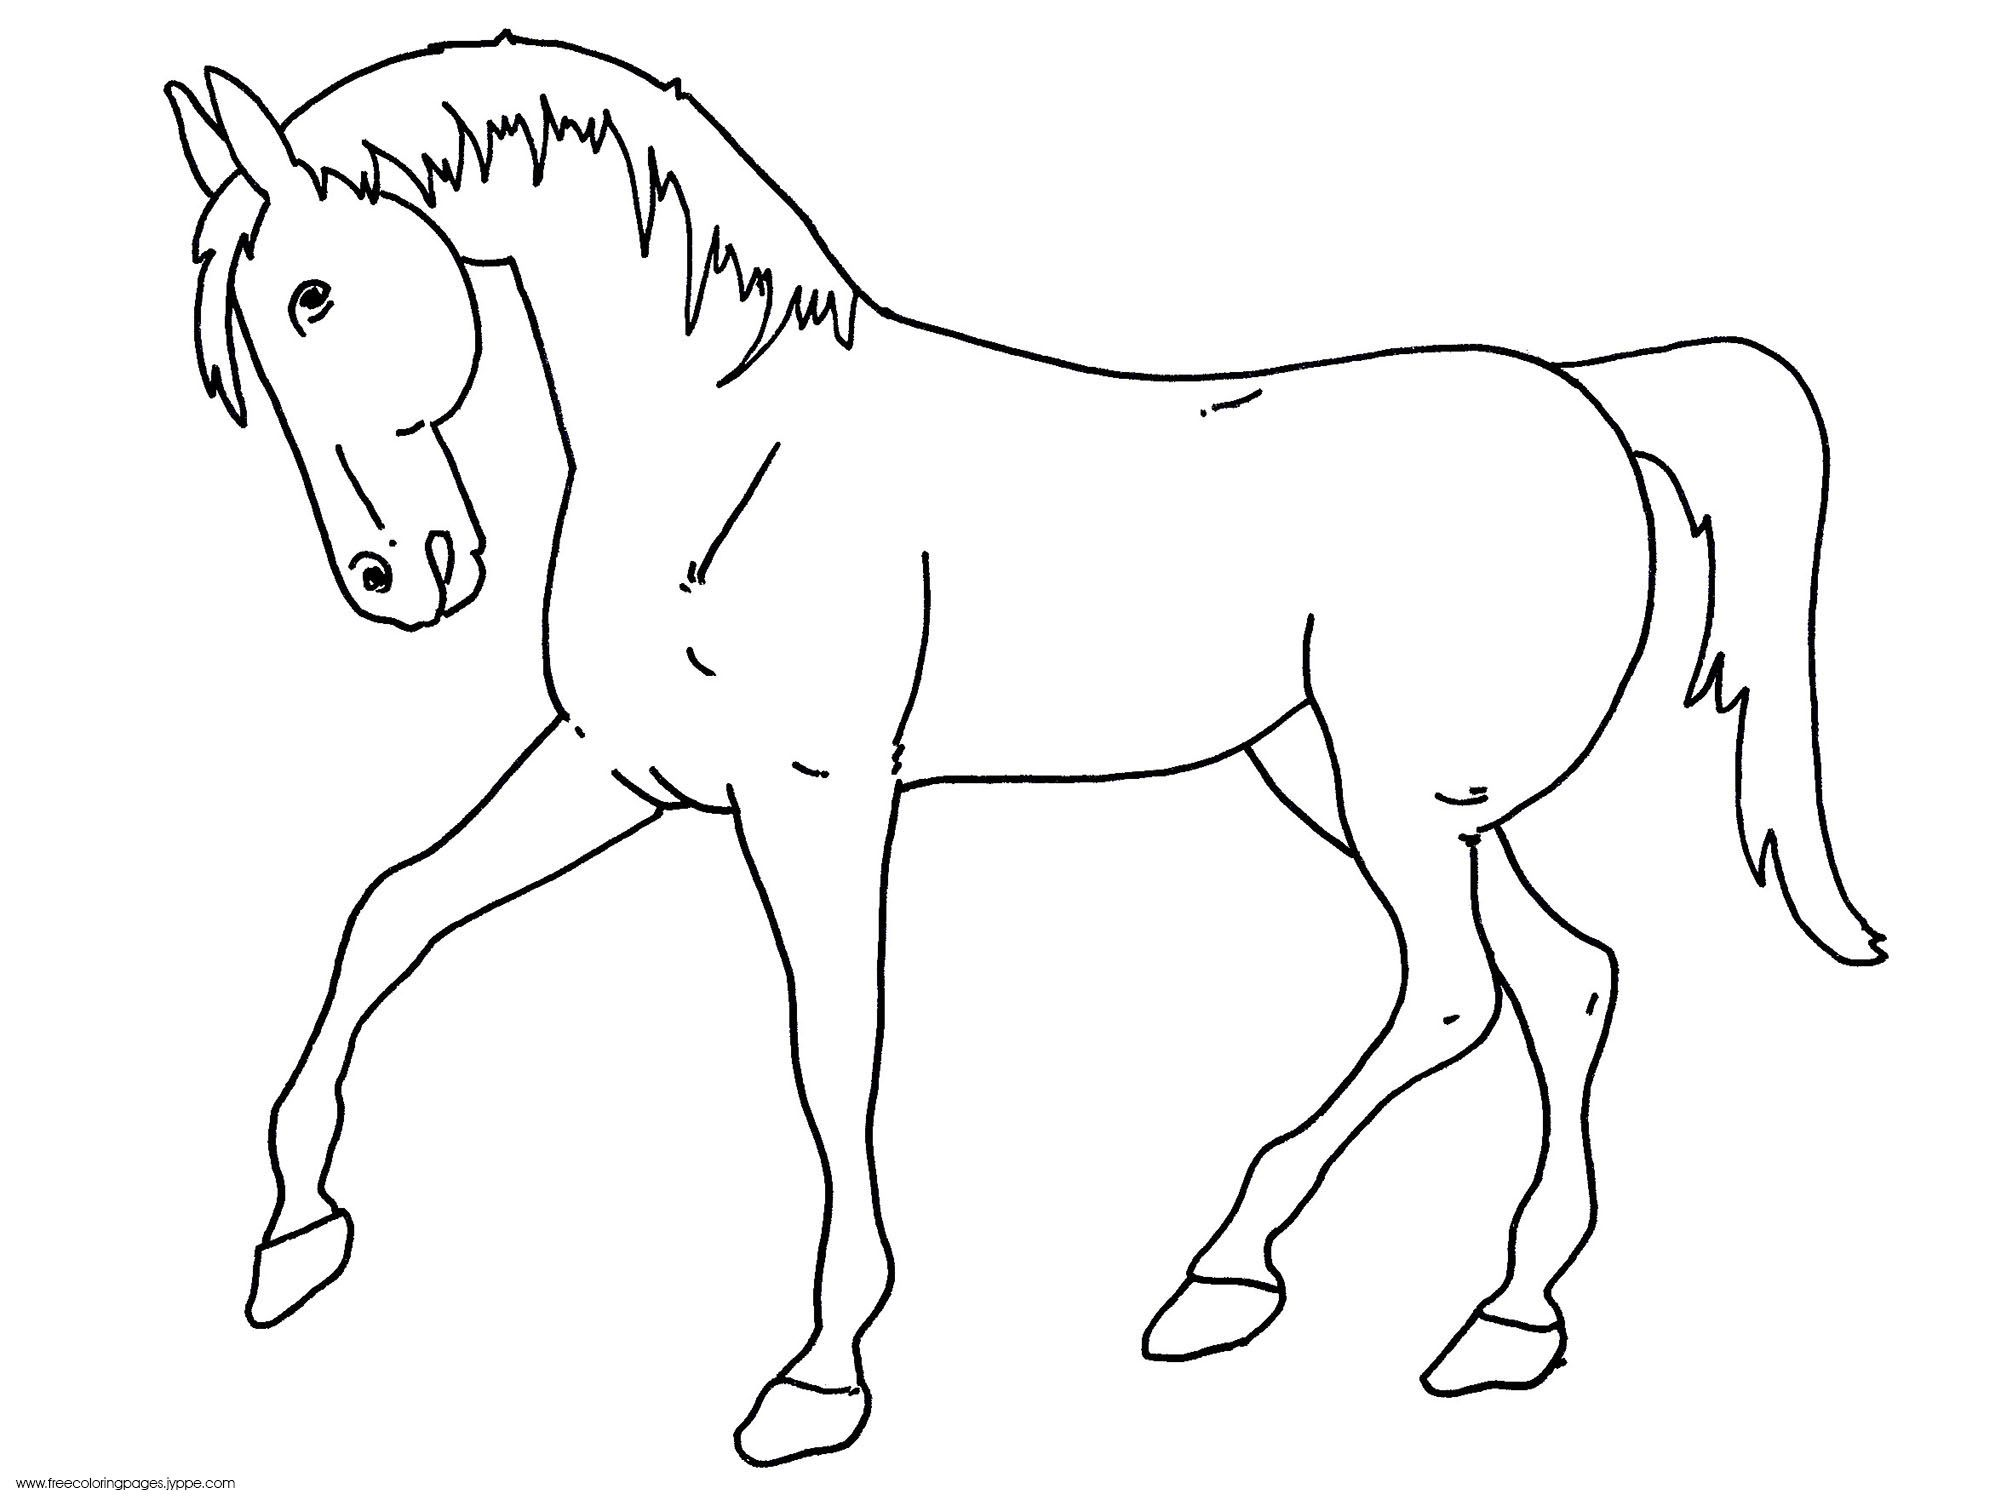 horse coloring shets free printable horse outline to color free coloring pages 2013 - Animal Outlines For Colouring